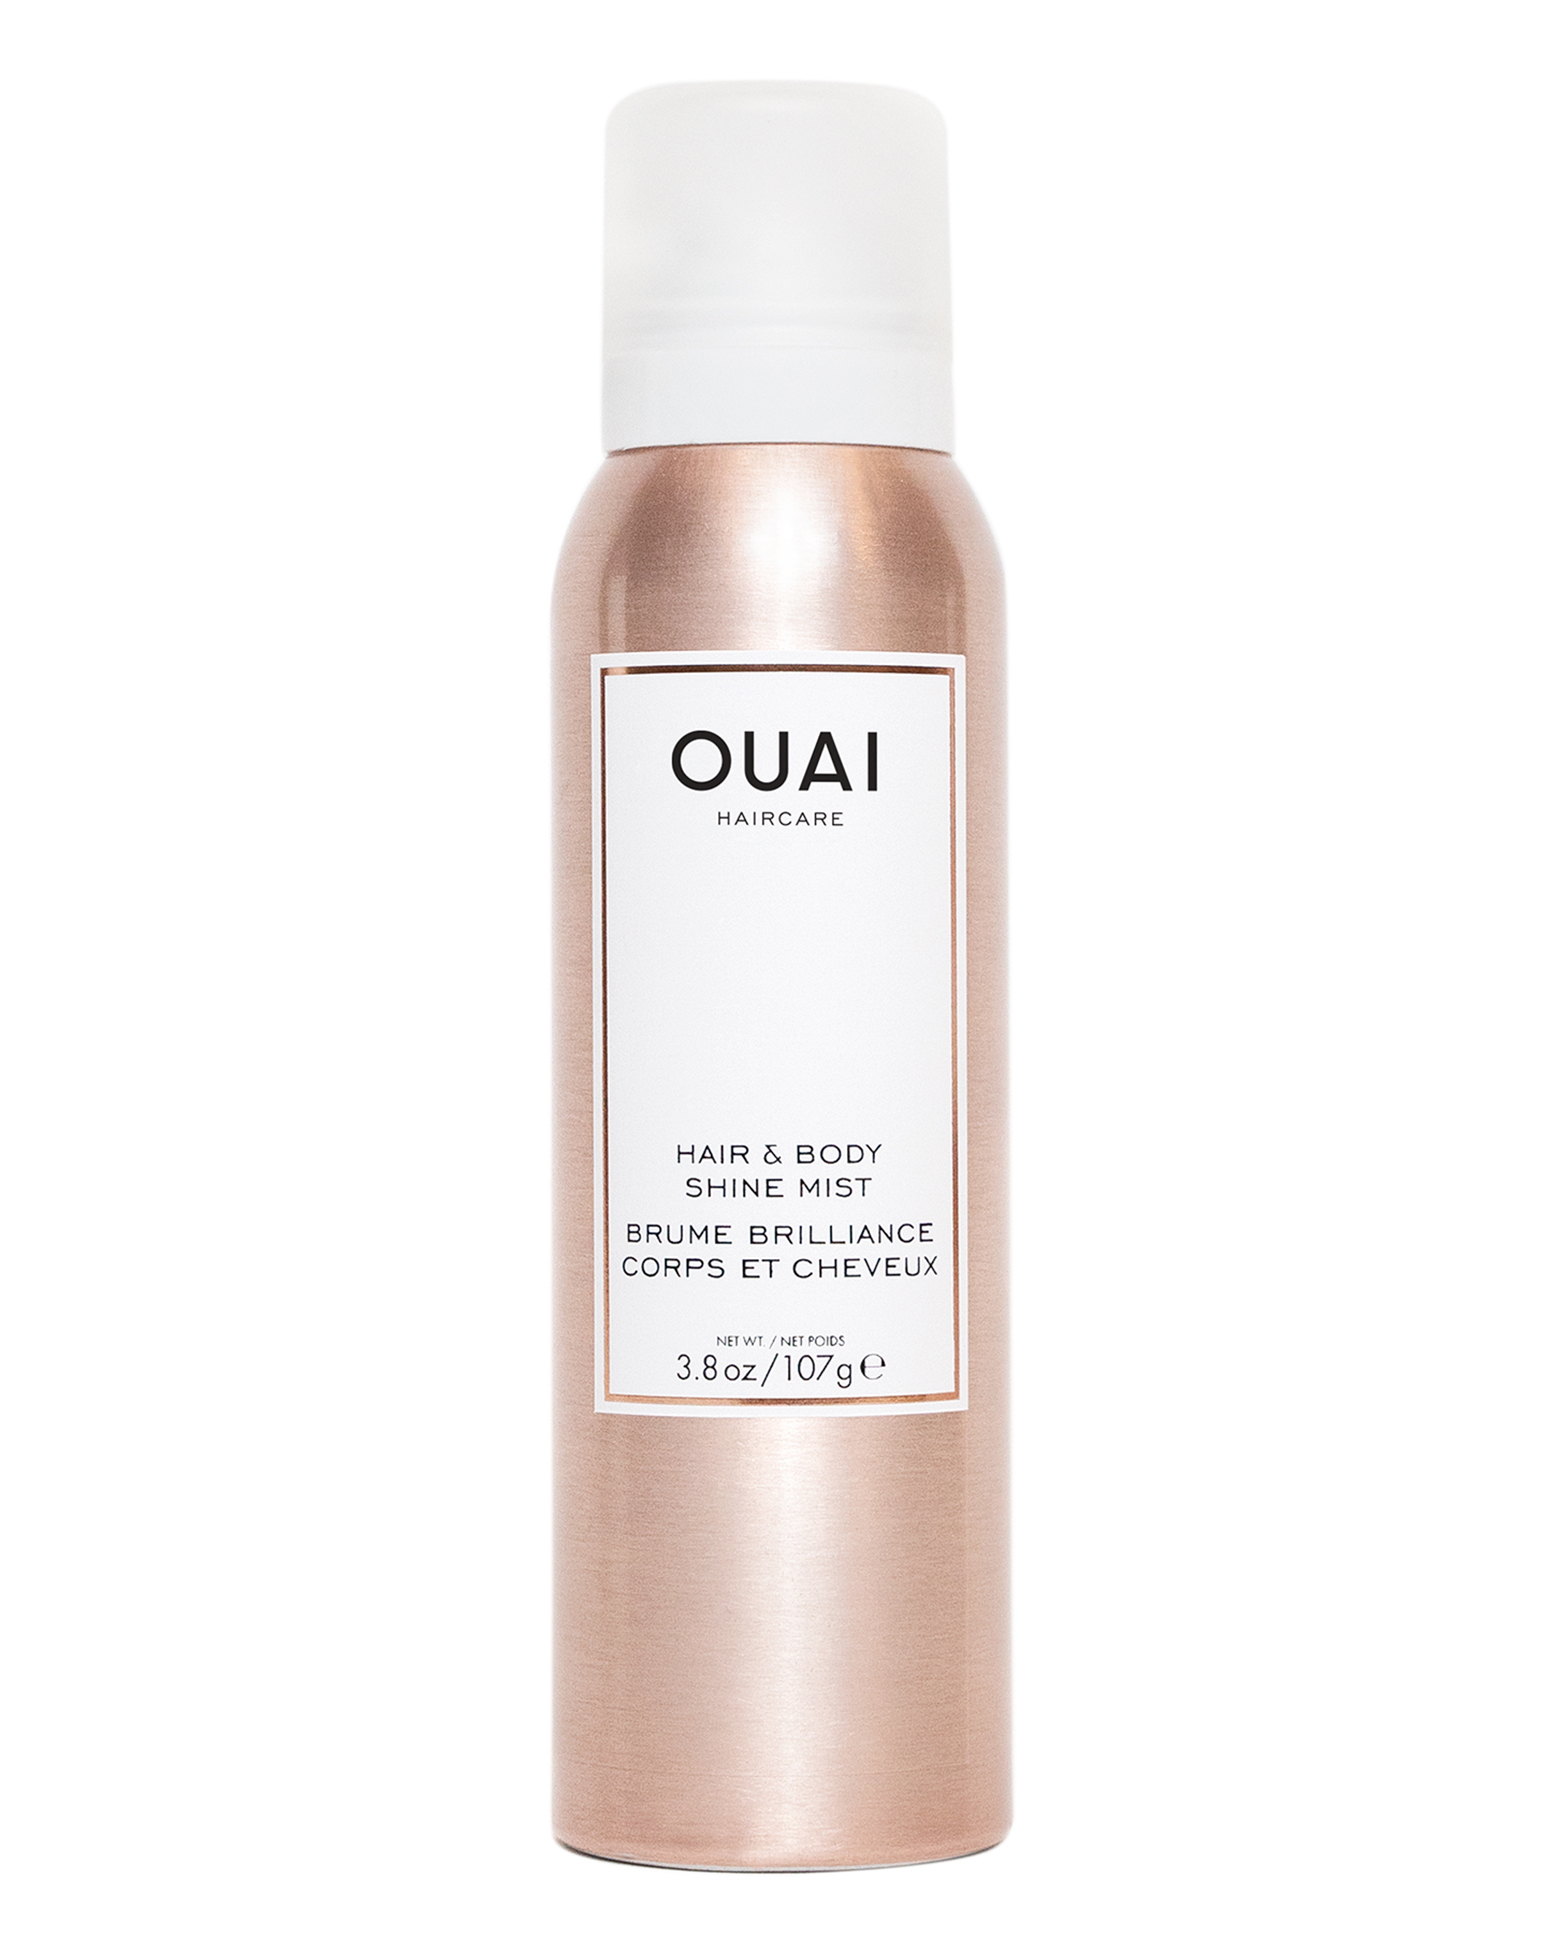 HAIR & BODY SHINE MIST – THE OUAI